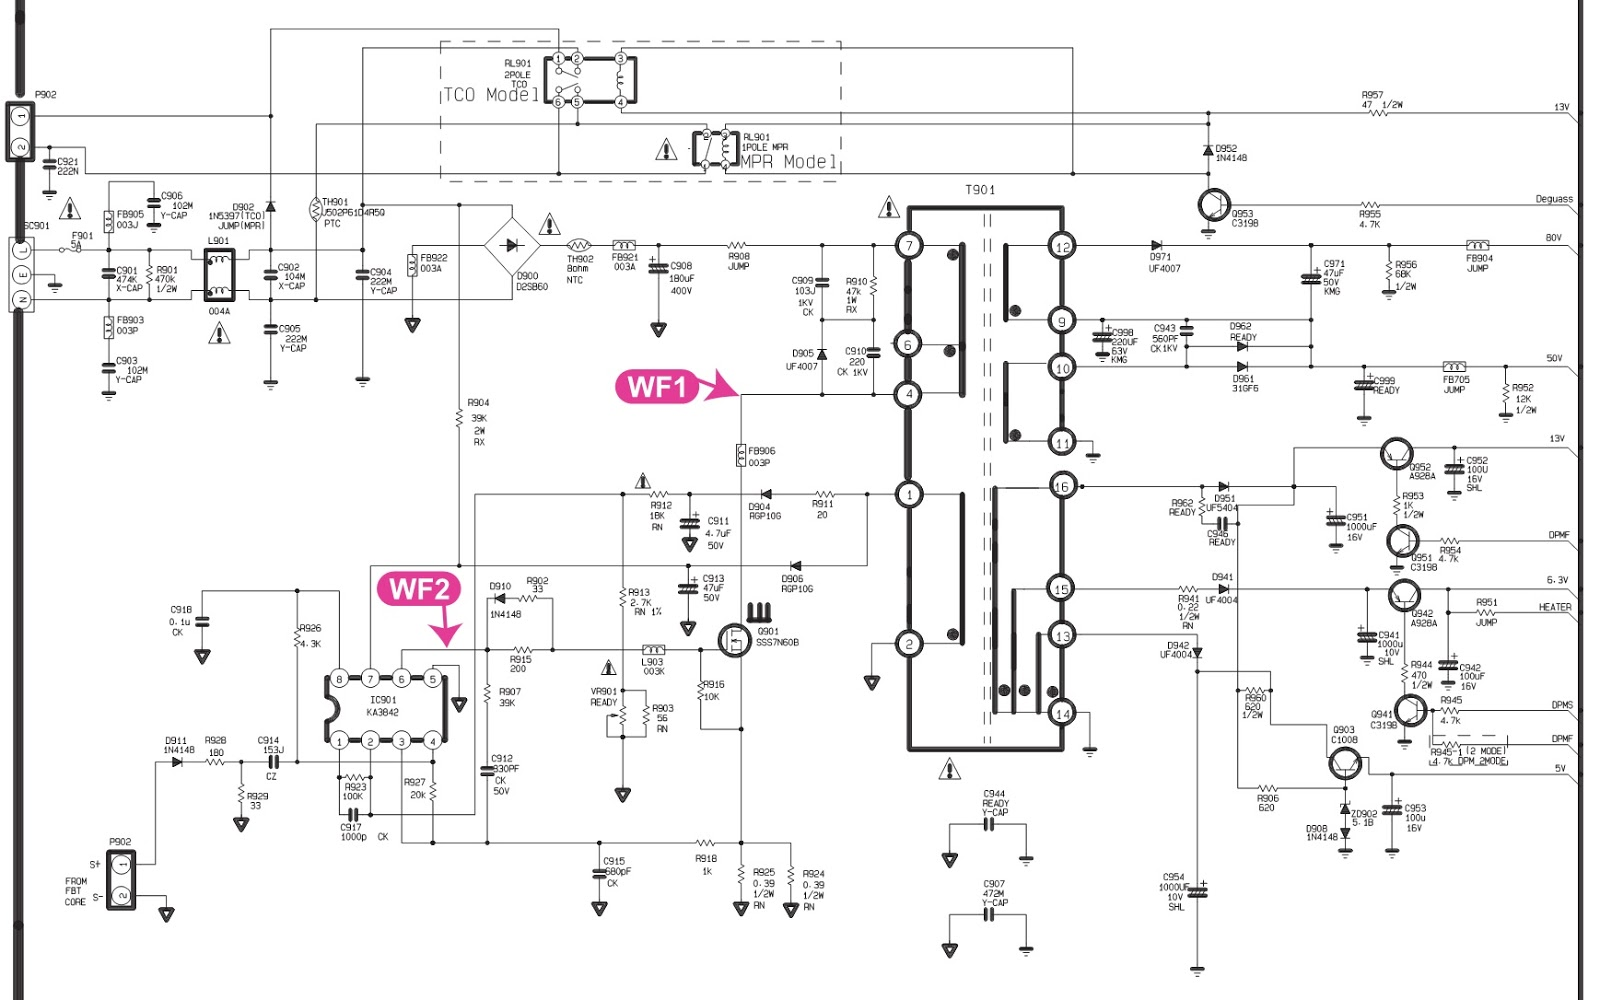 Crt Monitor Schematic Diagram Free Wiring For You Download Diagrams Pictures Lg Flatron C17lc 17 Inch Circuit Pdf Board